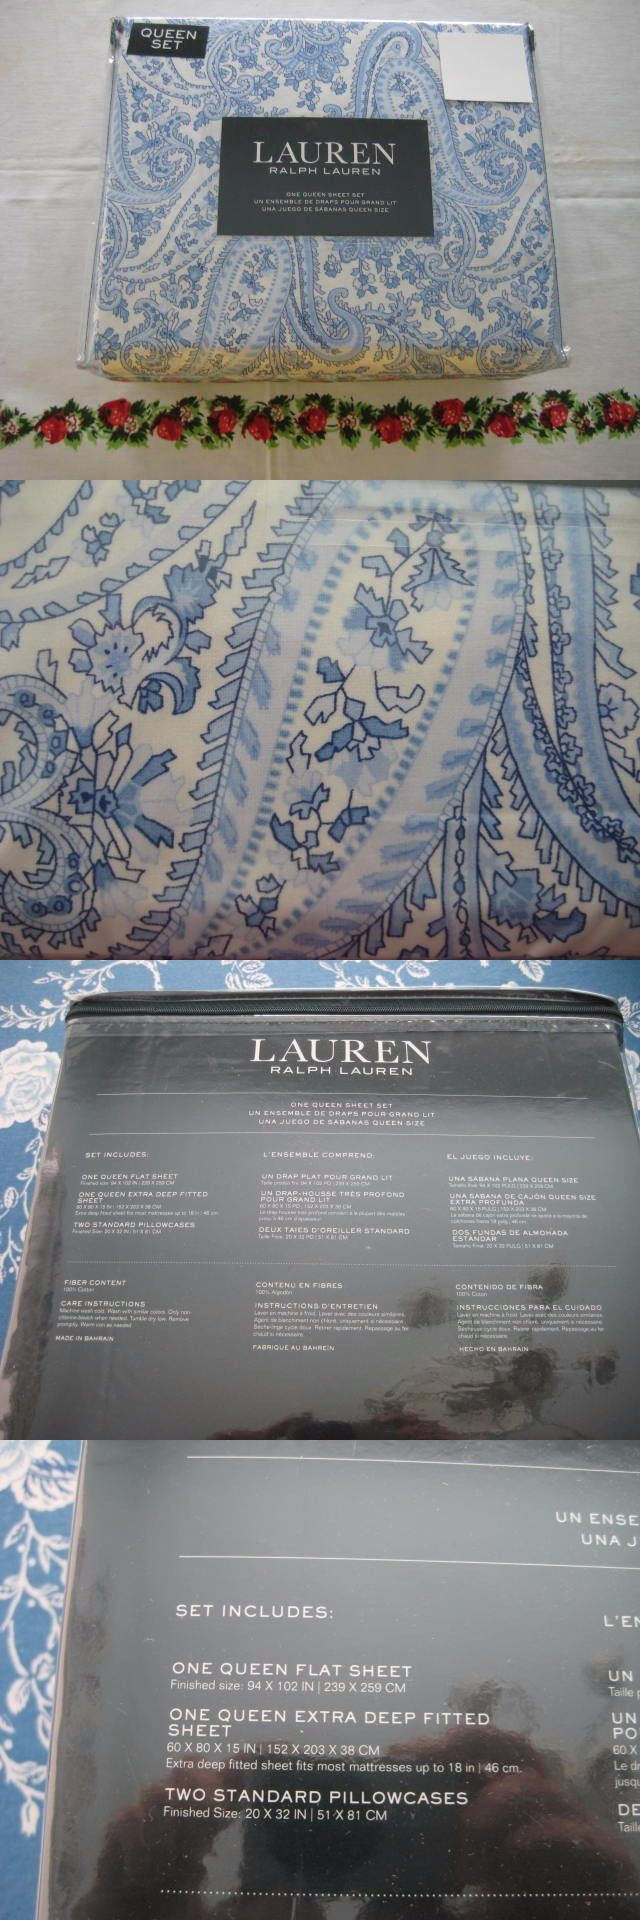 Sheets and Pillowcases 20460: Ralph Lauren Blue And White Paisley Floral Queen Sheet Set X Deep New -> BUY IT NOW ONLY: $69.95 on eBay!